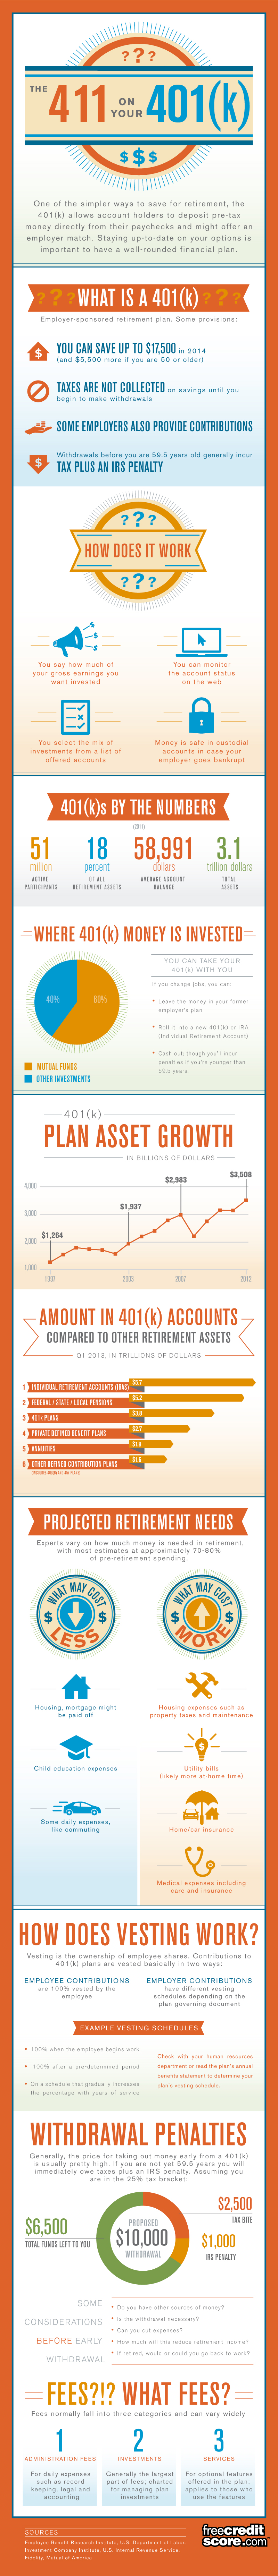 One of the easiest and most affordable ways to save for retirement is through a 401(k). Learn more about the options available to you. [Premium+ Infographic]